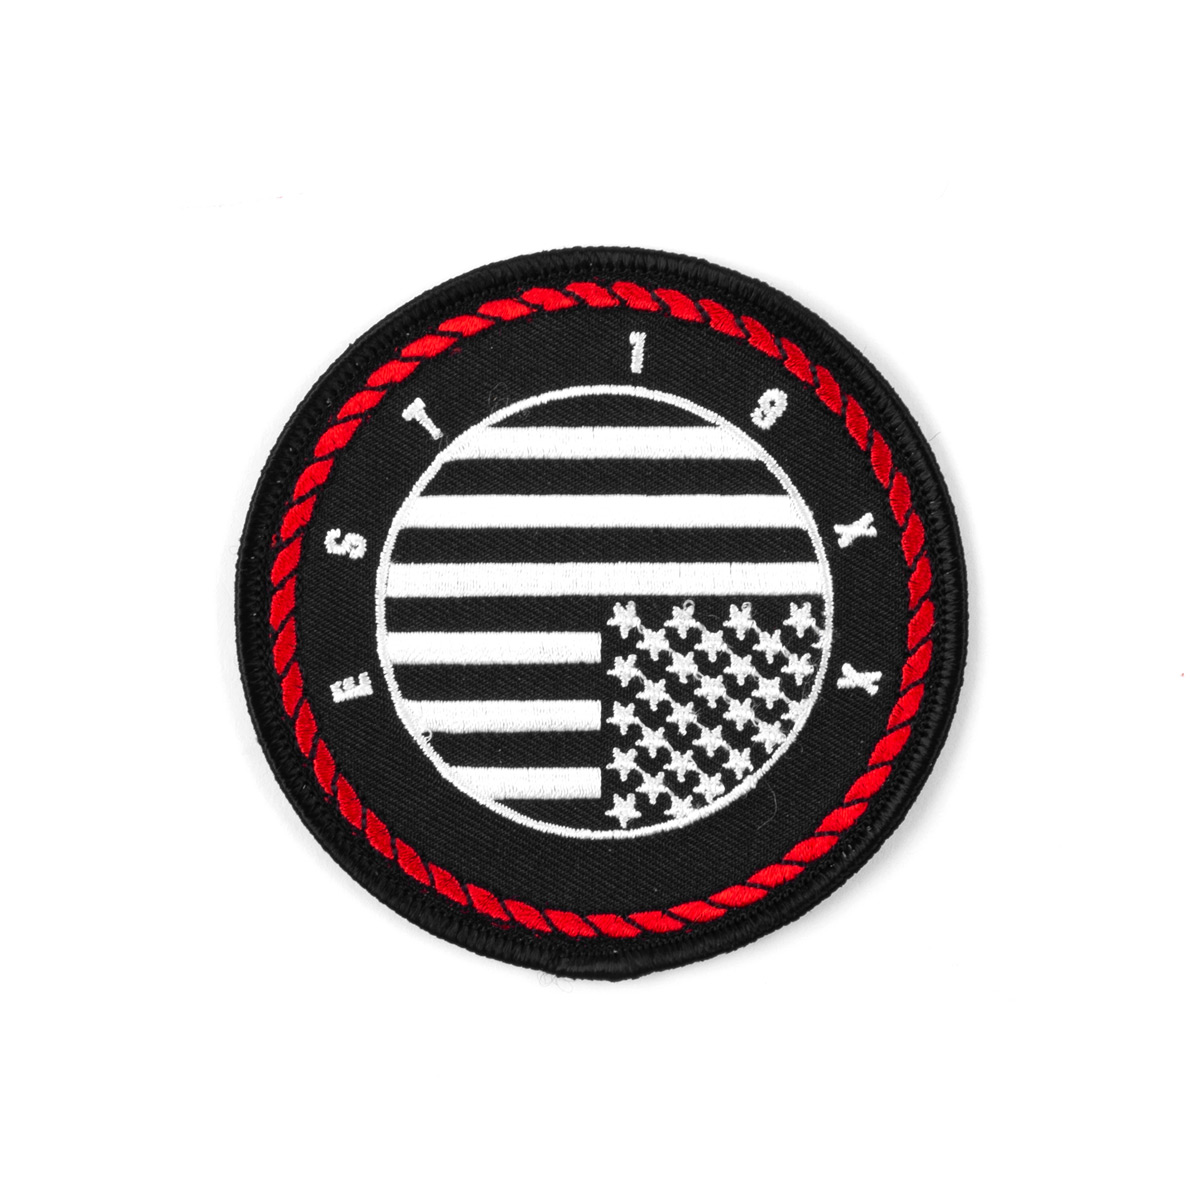 EST 19XX Flag Patch